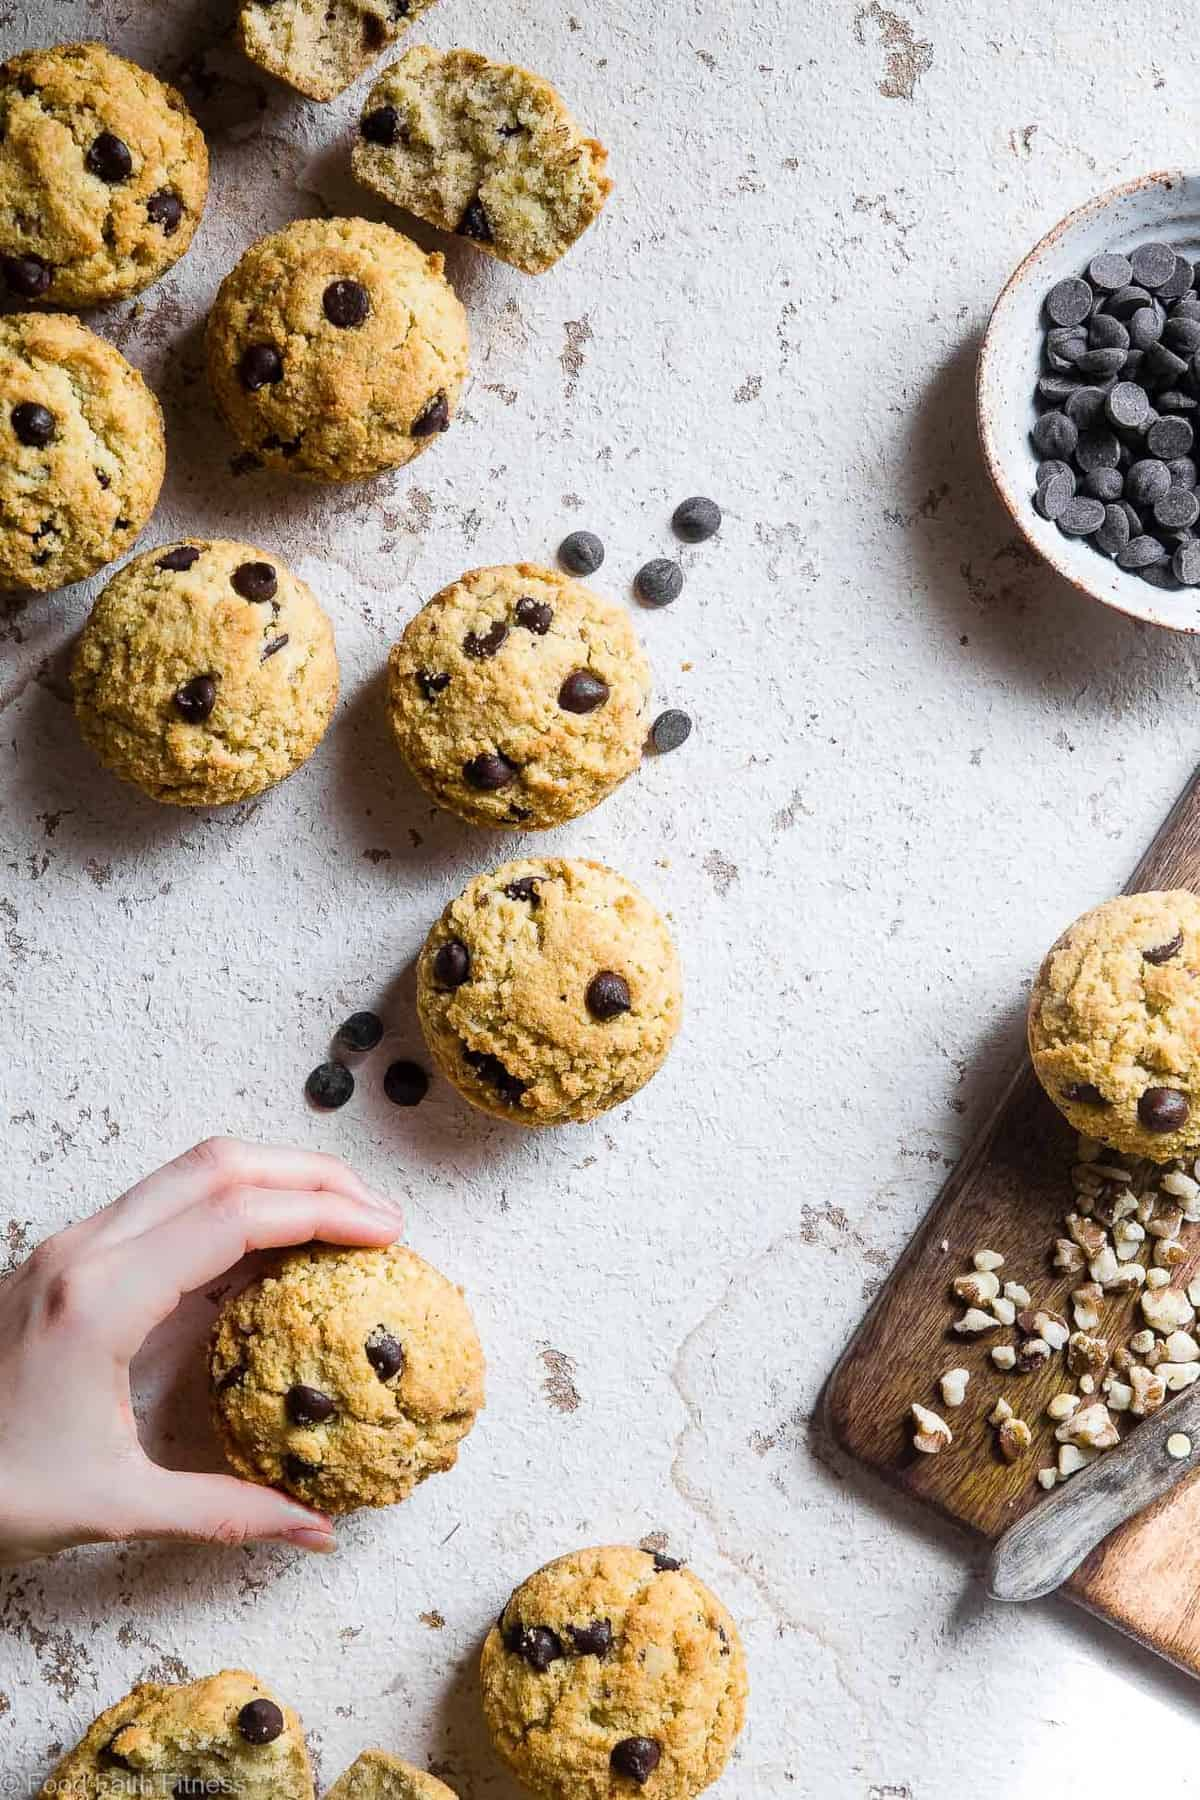 Walnut Chocolate Chip Keto Low Carb Muffins - These healthy, sugar free muffins are loaded with chocolate chips and black walnuts and are SO moist and fluffy you won't believe they're gluten free, keto AND paleo! | #Foodfaithfitness |